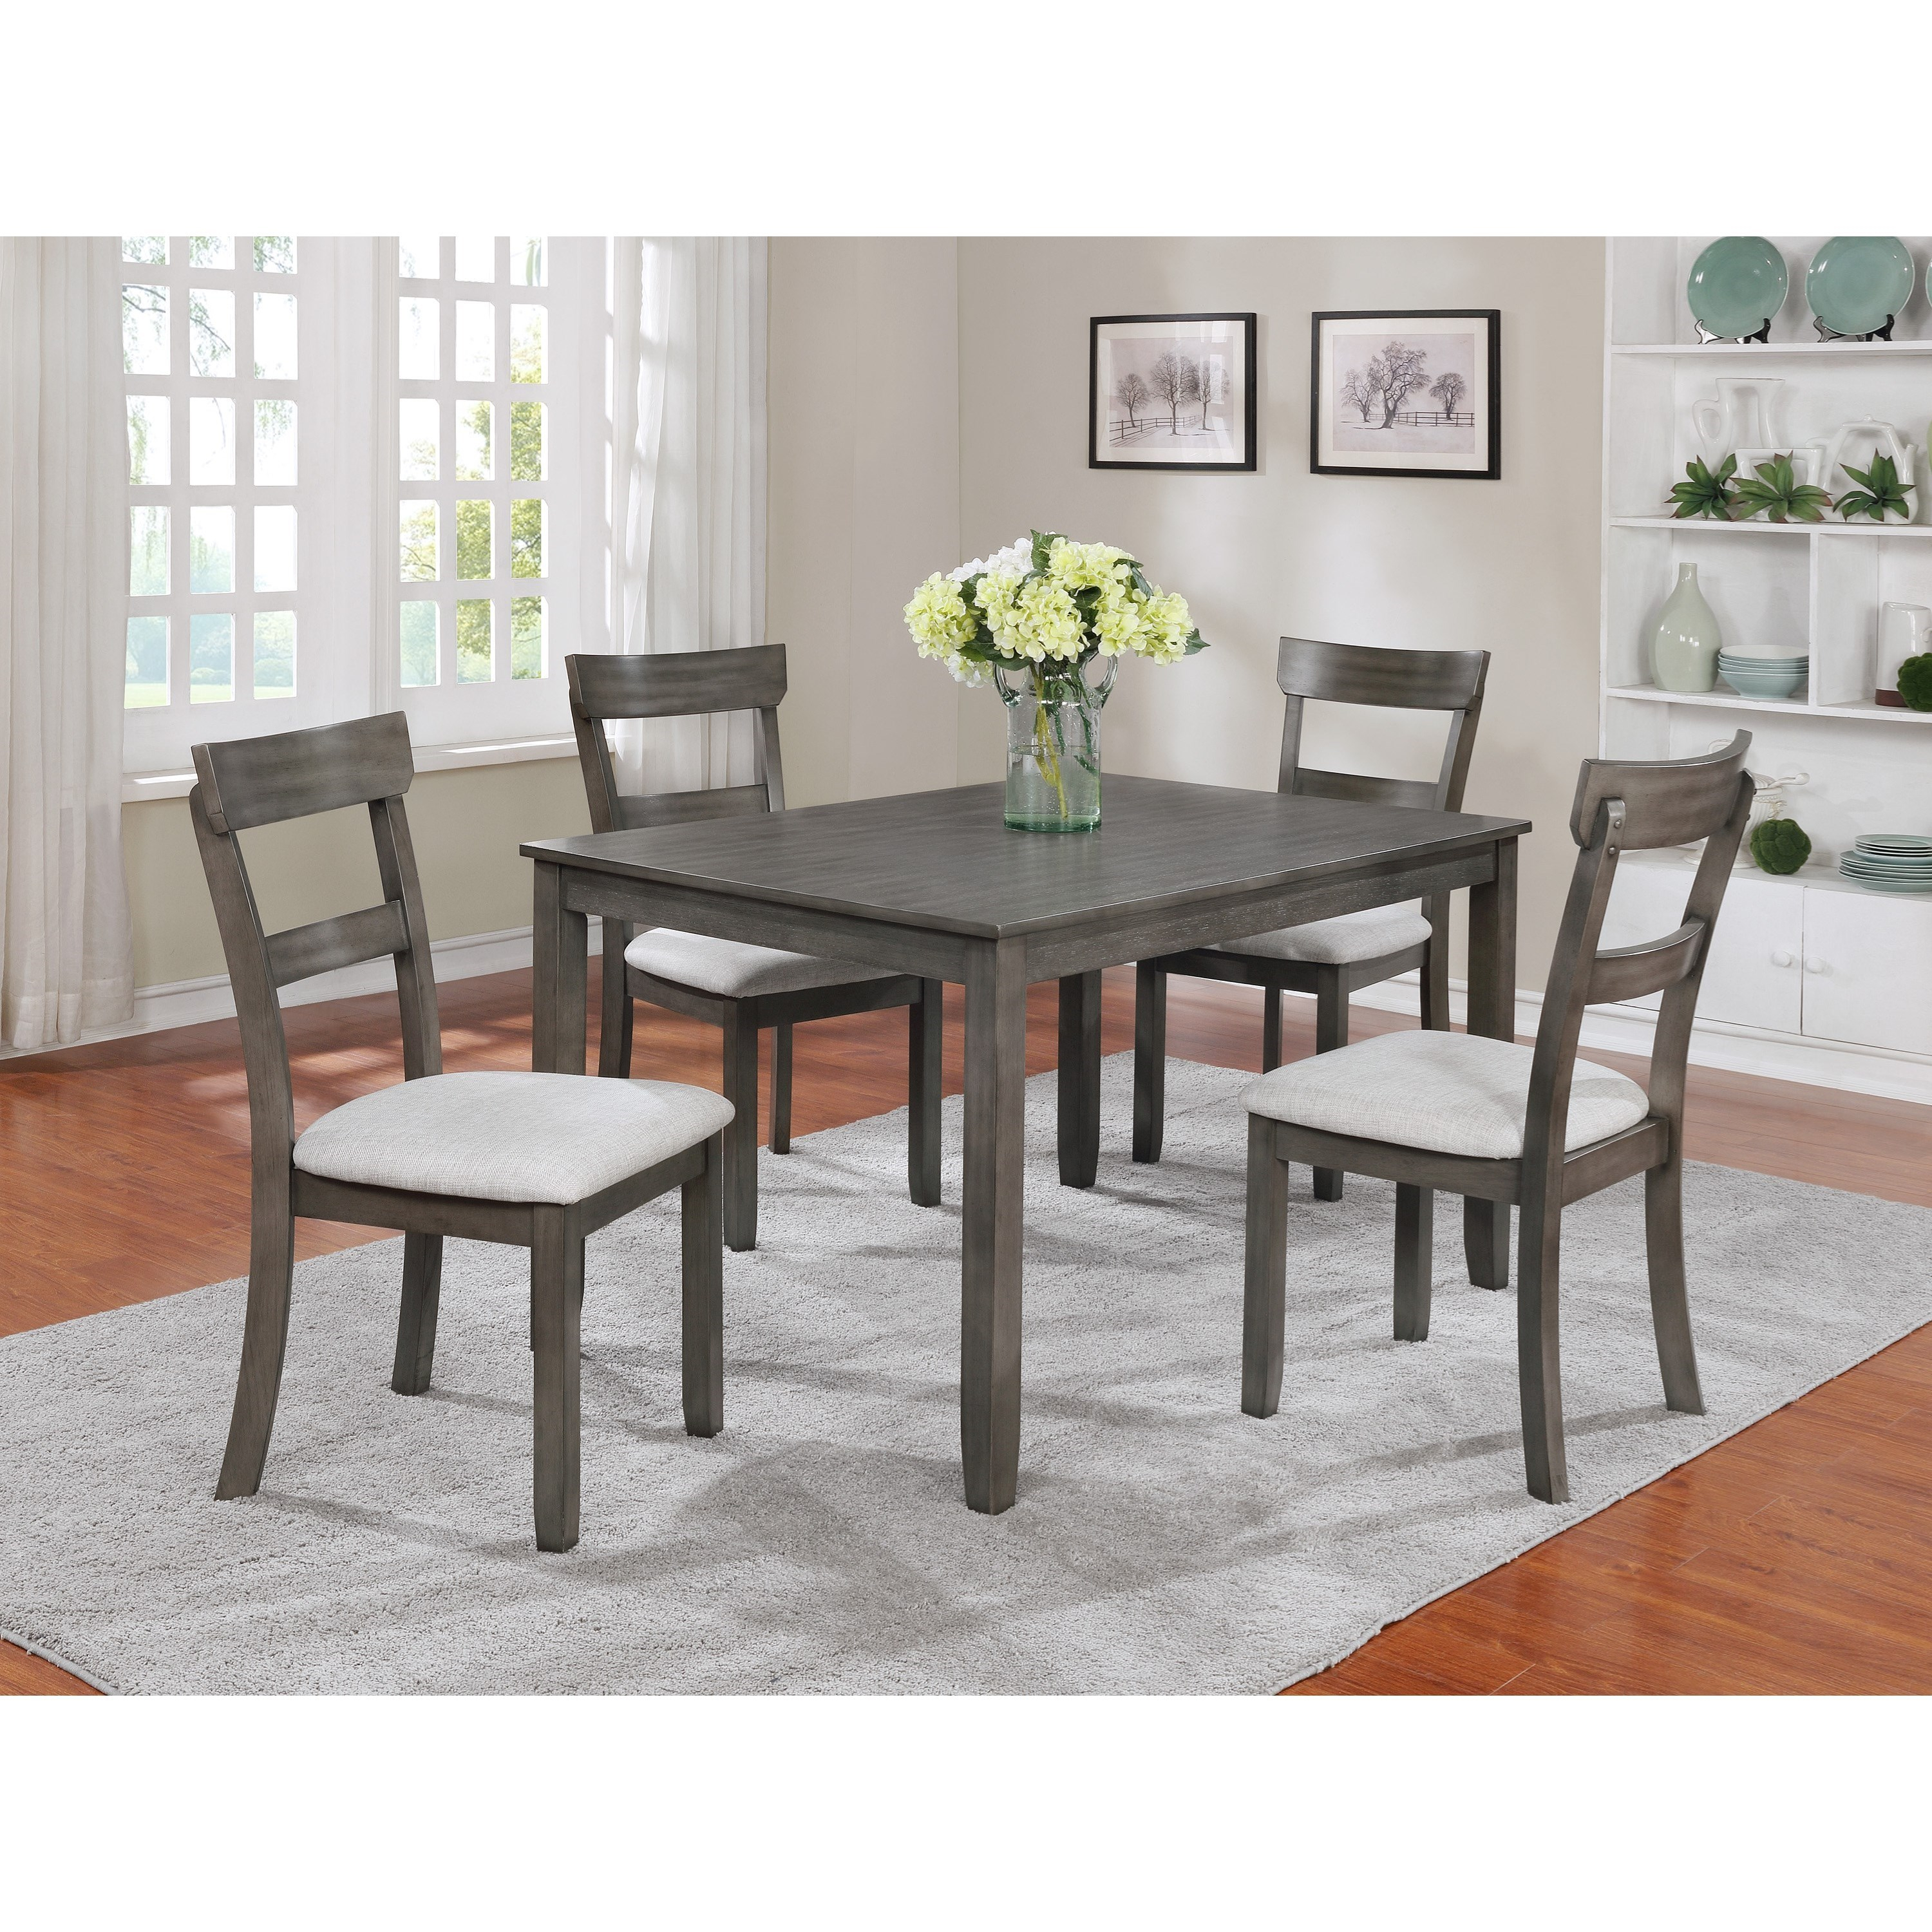 Henderson 5 Piece Dining Table And Chair Setcrown Mark At Dunk & Bright Furniture In Recent 5 Piece Dining Sets (View 2 of 20)